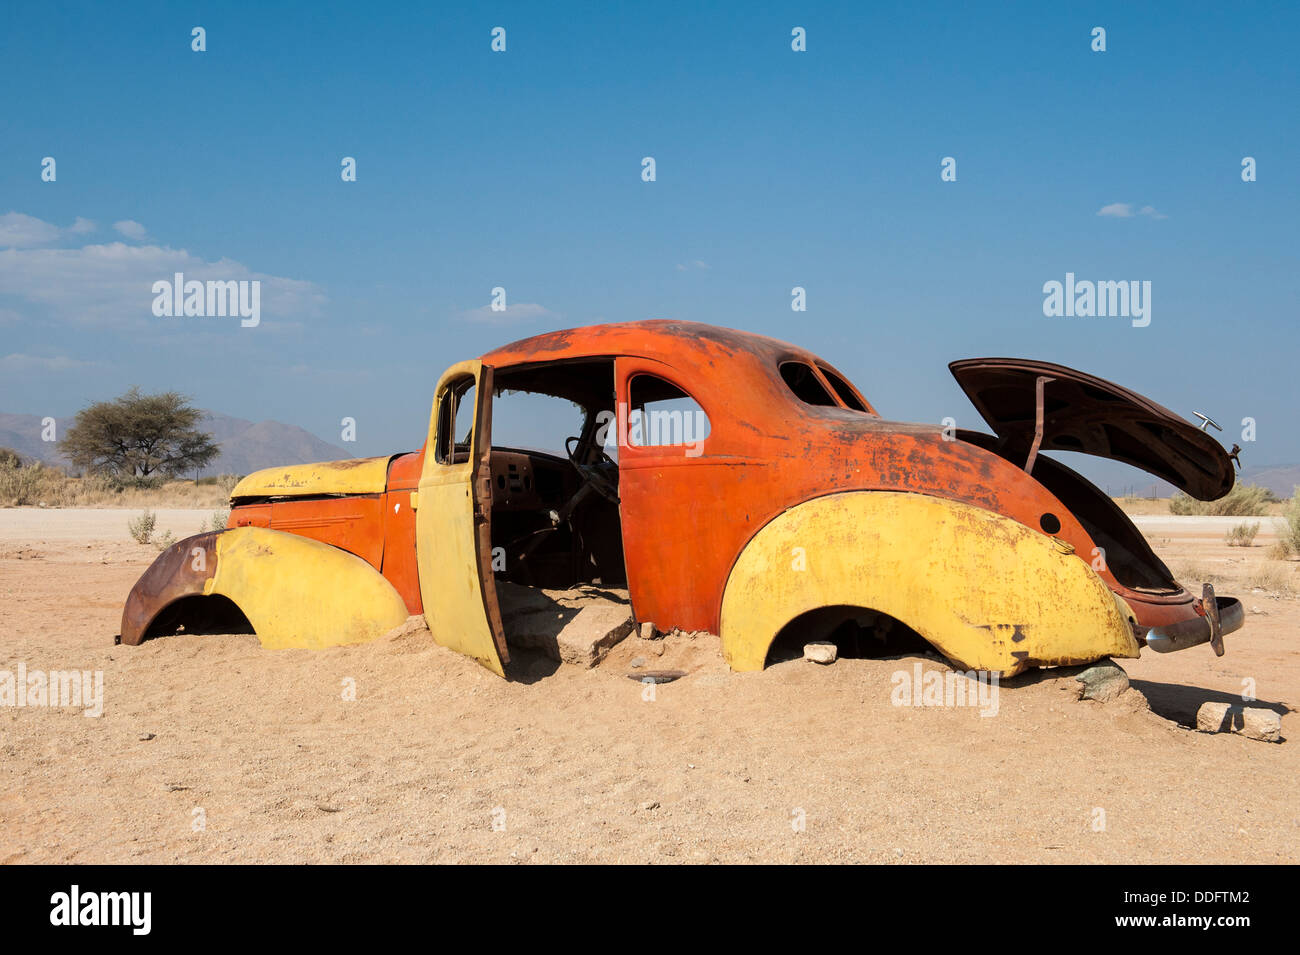 Old car wreck stuck in the sand at Solitaire, Khomas region, Namibia - Stock Image